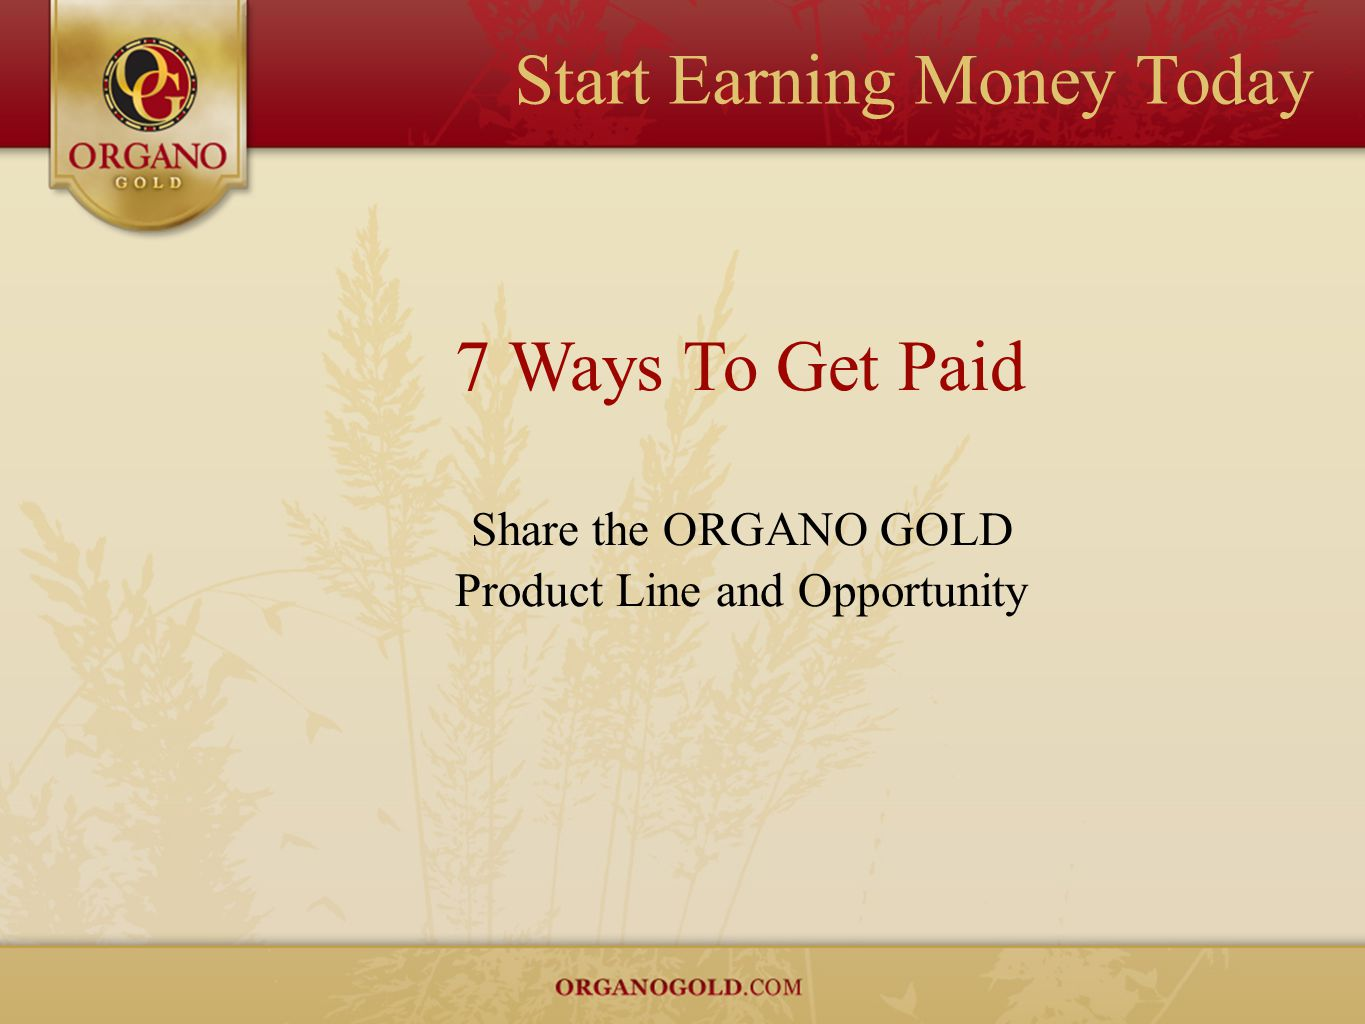 Start Earning Money Today 7 Ways To Get Paid Share the ORGANO GOLD Product Line and Opportunity